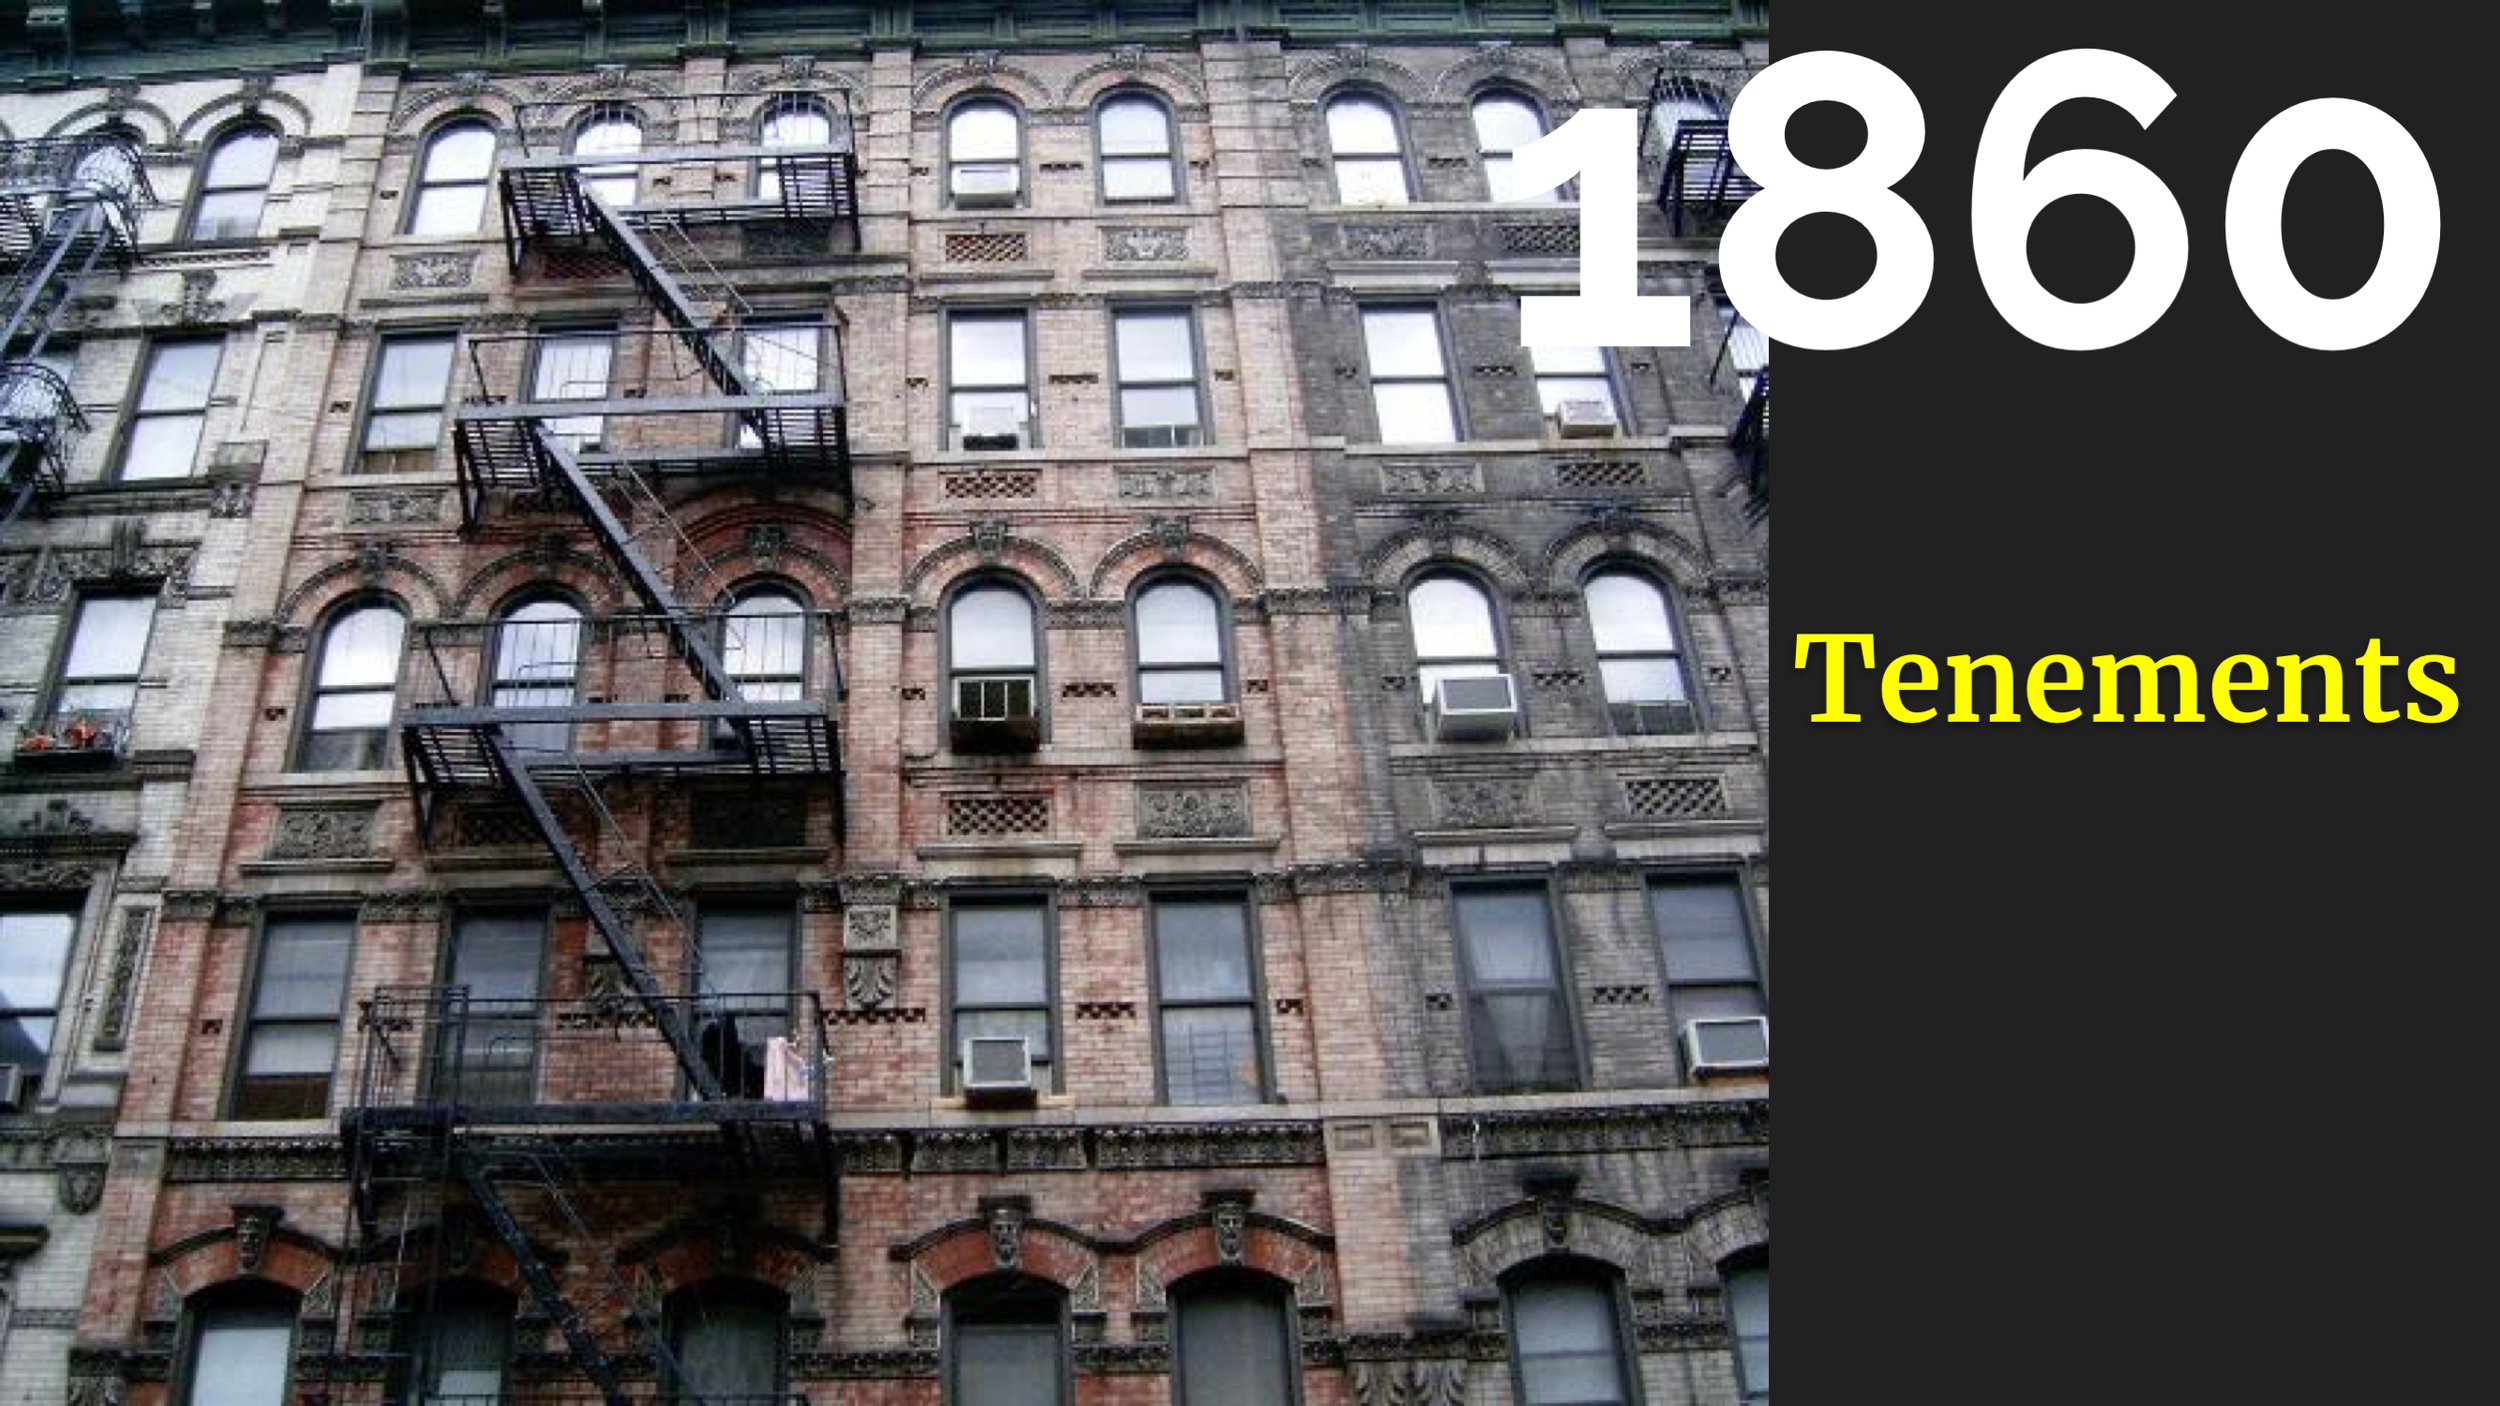 Let's jump forward 25 years and talk about tenements. Tenements were extremely dense, extremely terrible housing. I'd read about tenements but hasn't realised the scale of them. In the 1860s, nearly 500 thousand people -- more than half the city -- lived in tenements.     The population of New York City  doubled   every decade  between 1800 and 1880. Maybe you've seen this with teams and software systems: when you grow rapidly, you can build some culture problems and some technical debt. This was certainly the case here. Landlords made more accommodation by splitting big rooms into many smaller ones, mostly with no light or ventilation. These were really awful places to live. They were crime riddled, filthy and filled with disease. Every report about them mentioned that they were fire traps.     In 1860, two tenement fires happened back to back.